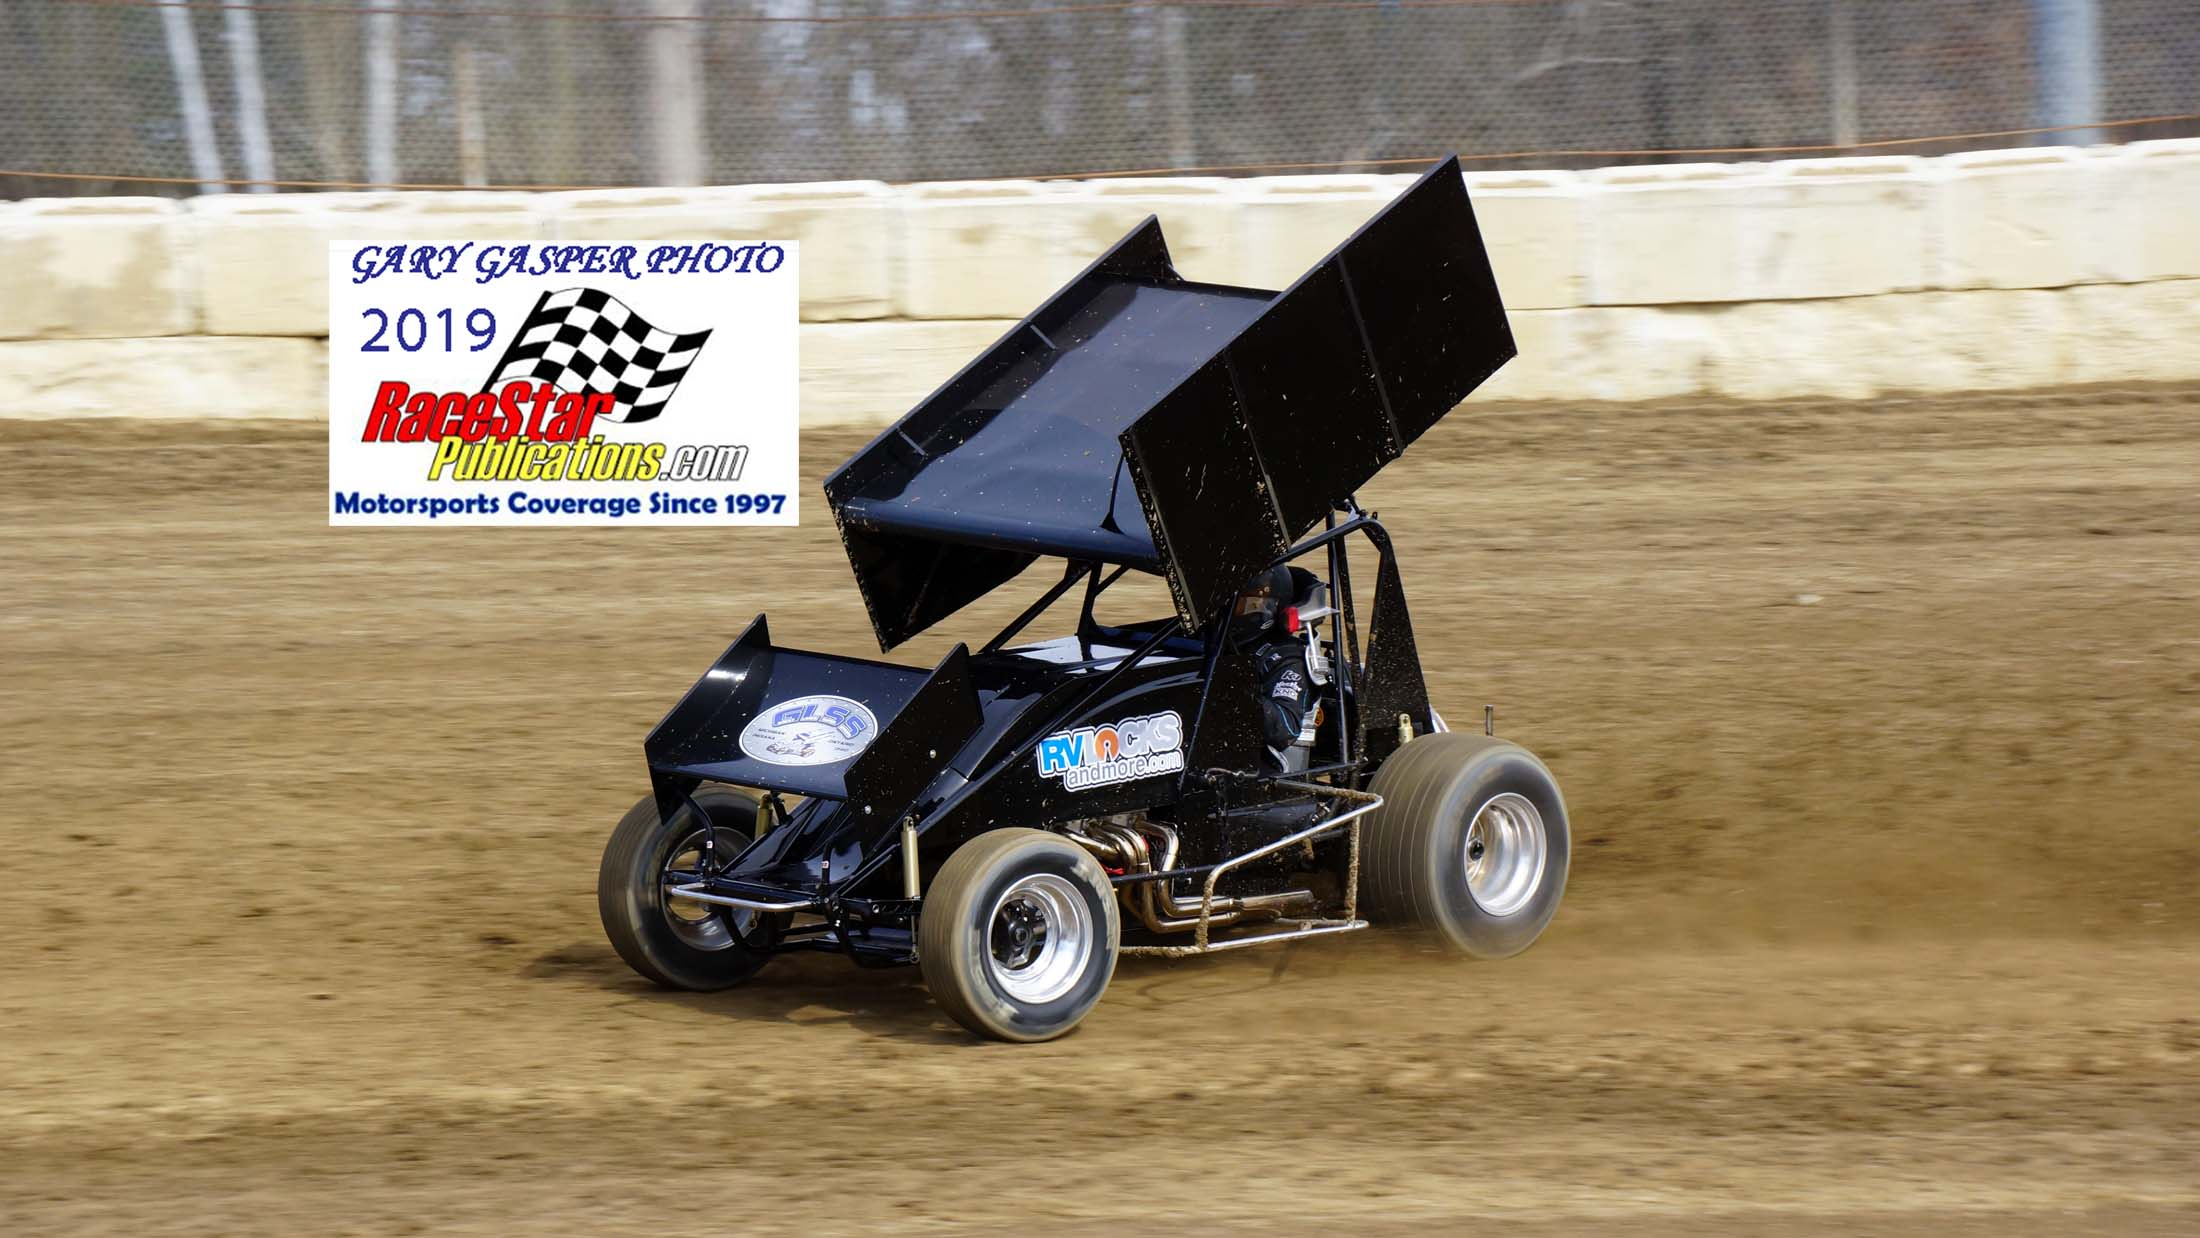 Plymouth Speedway Open Wheel Test & Tune: Gary Gasper Photos